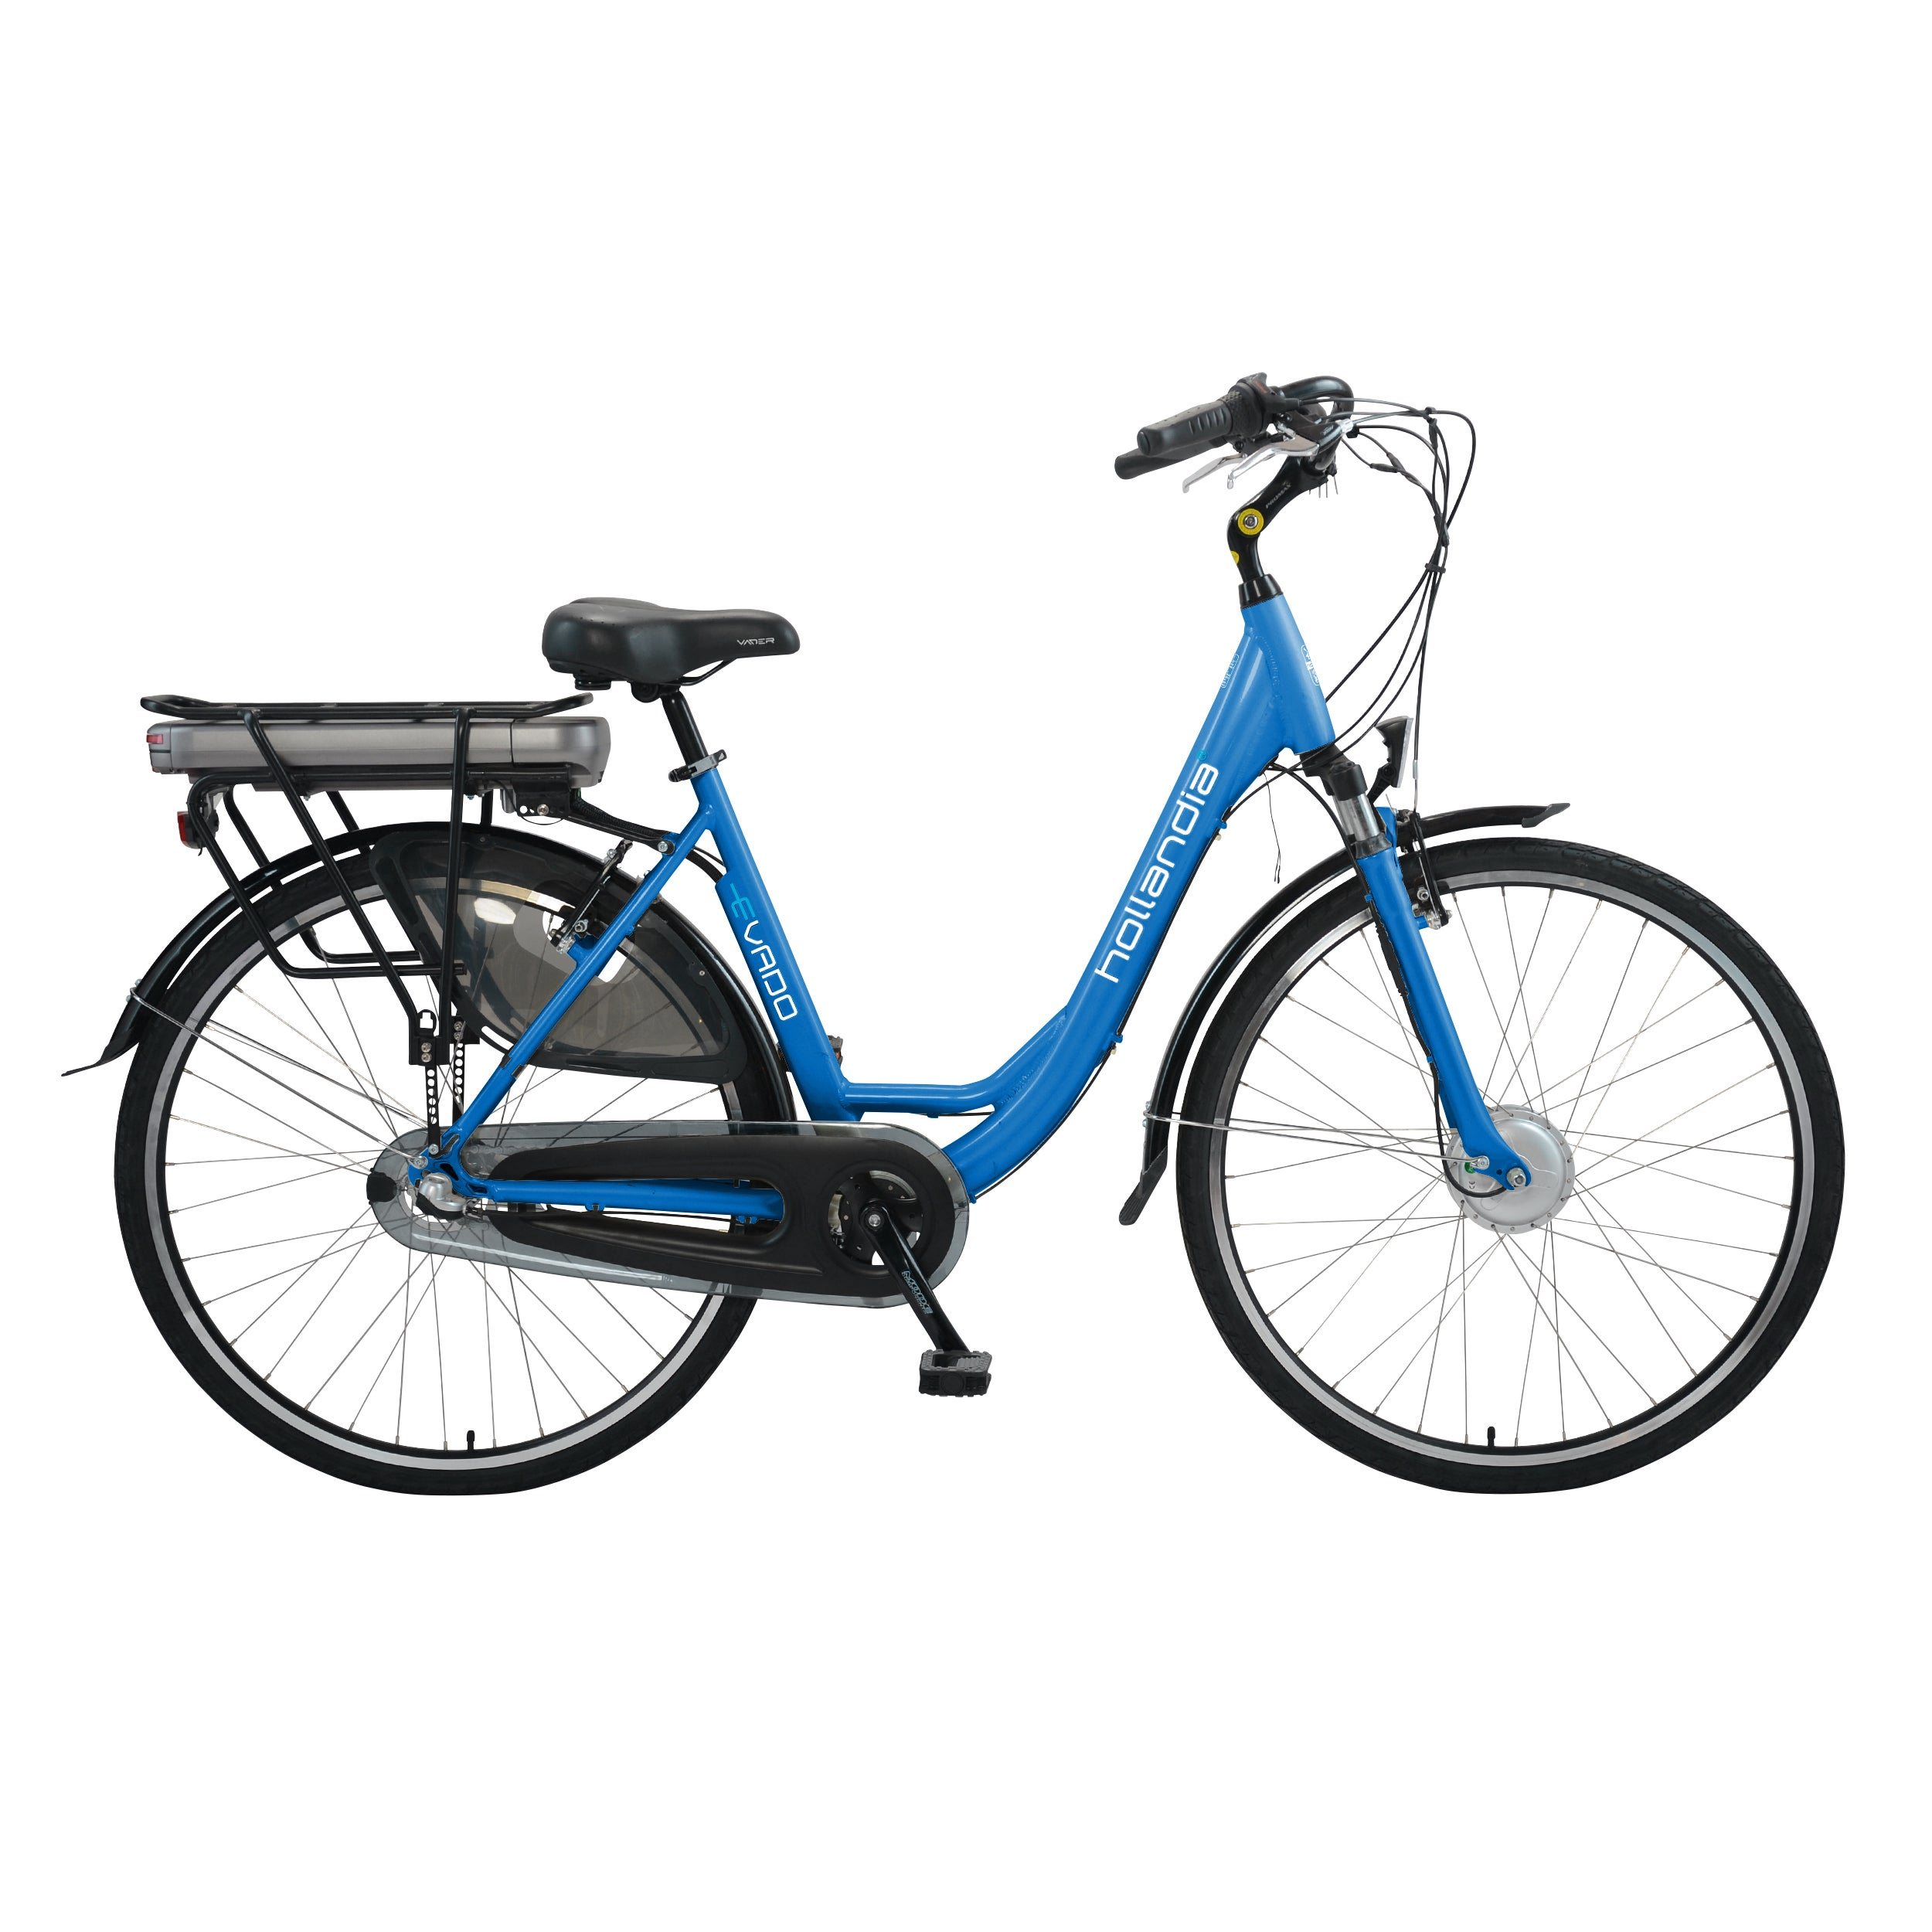 Hollandia Electric City Commuter Bicycle (Blue, 3 Speed, ...